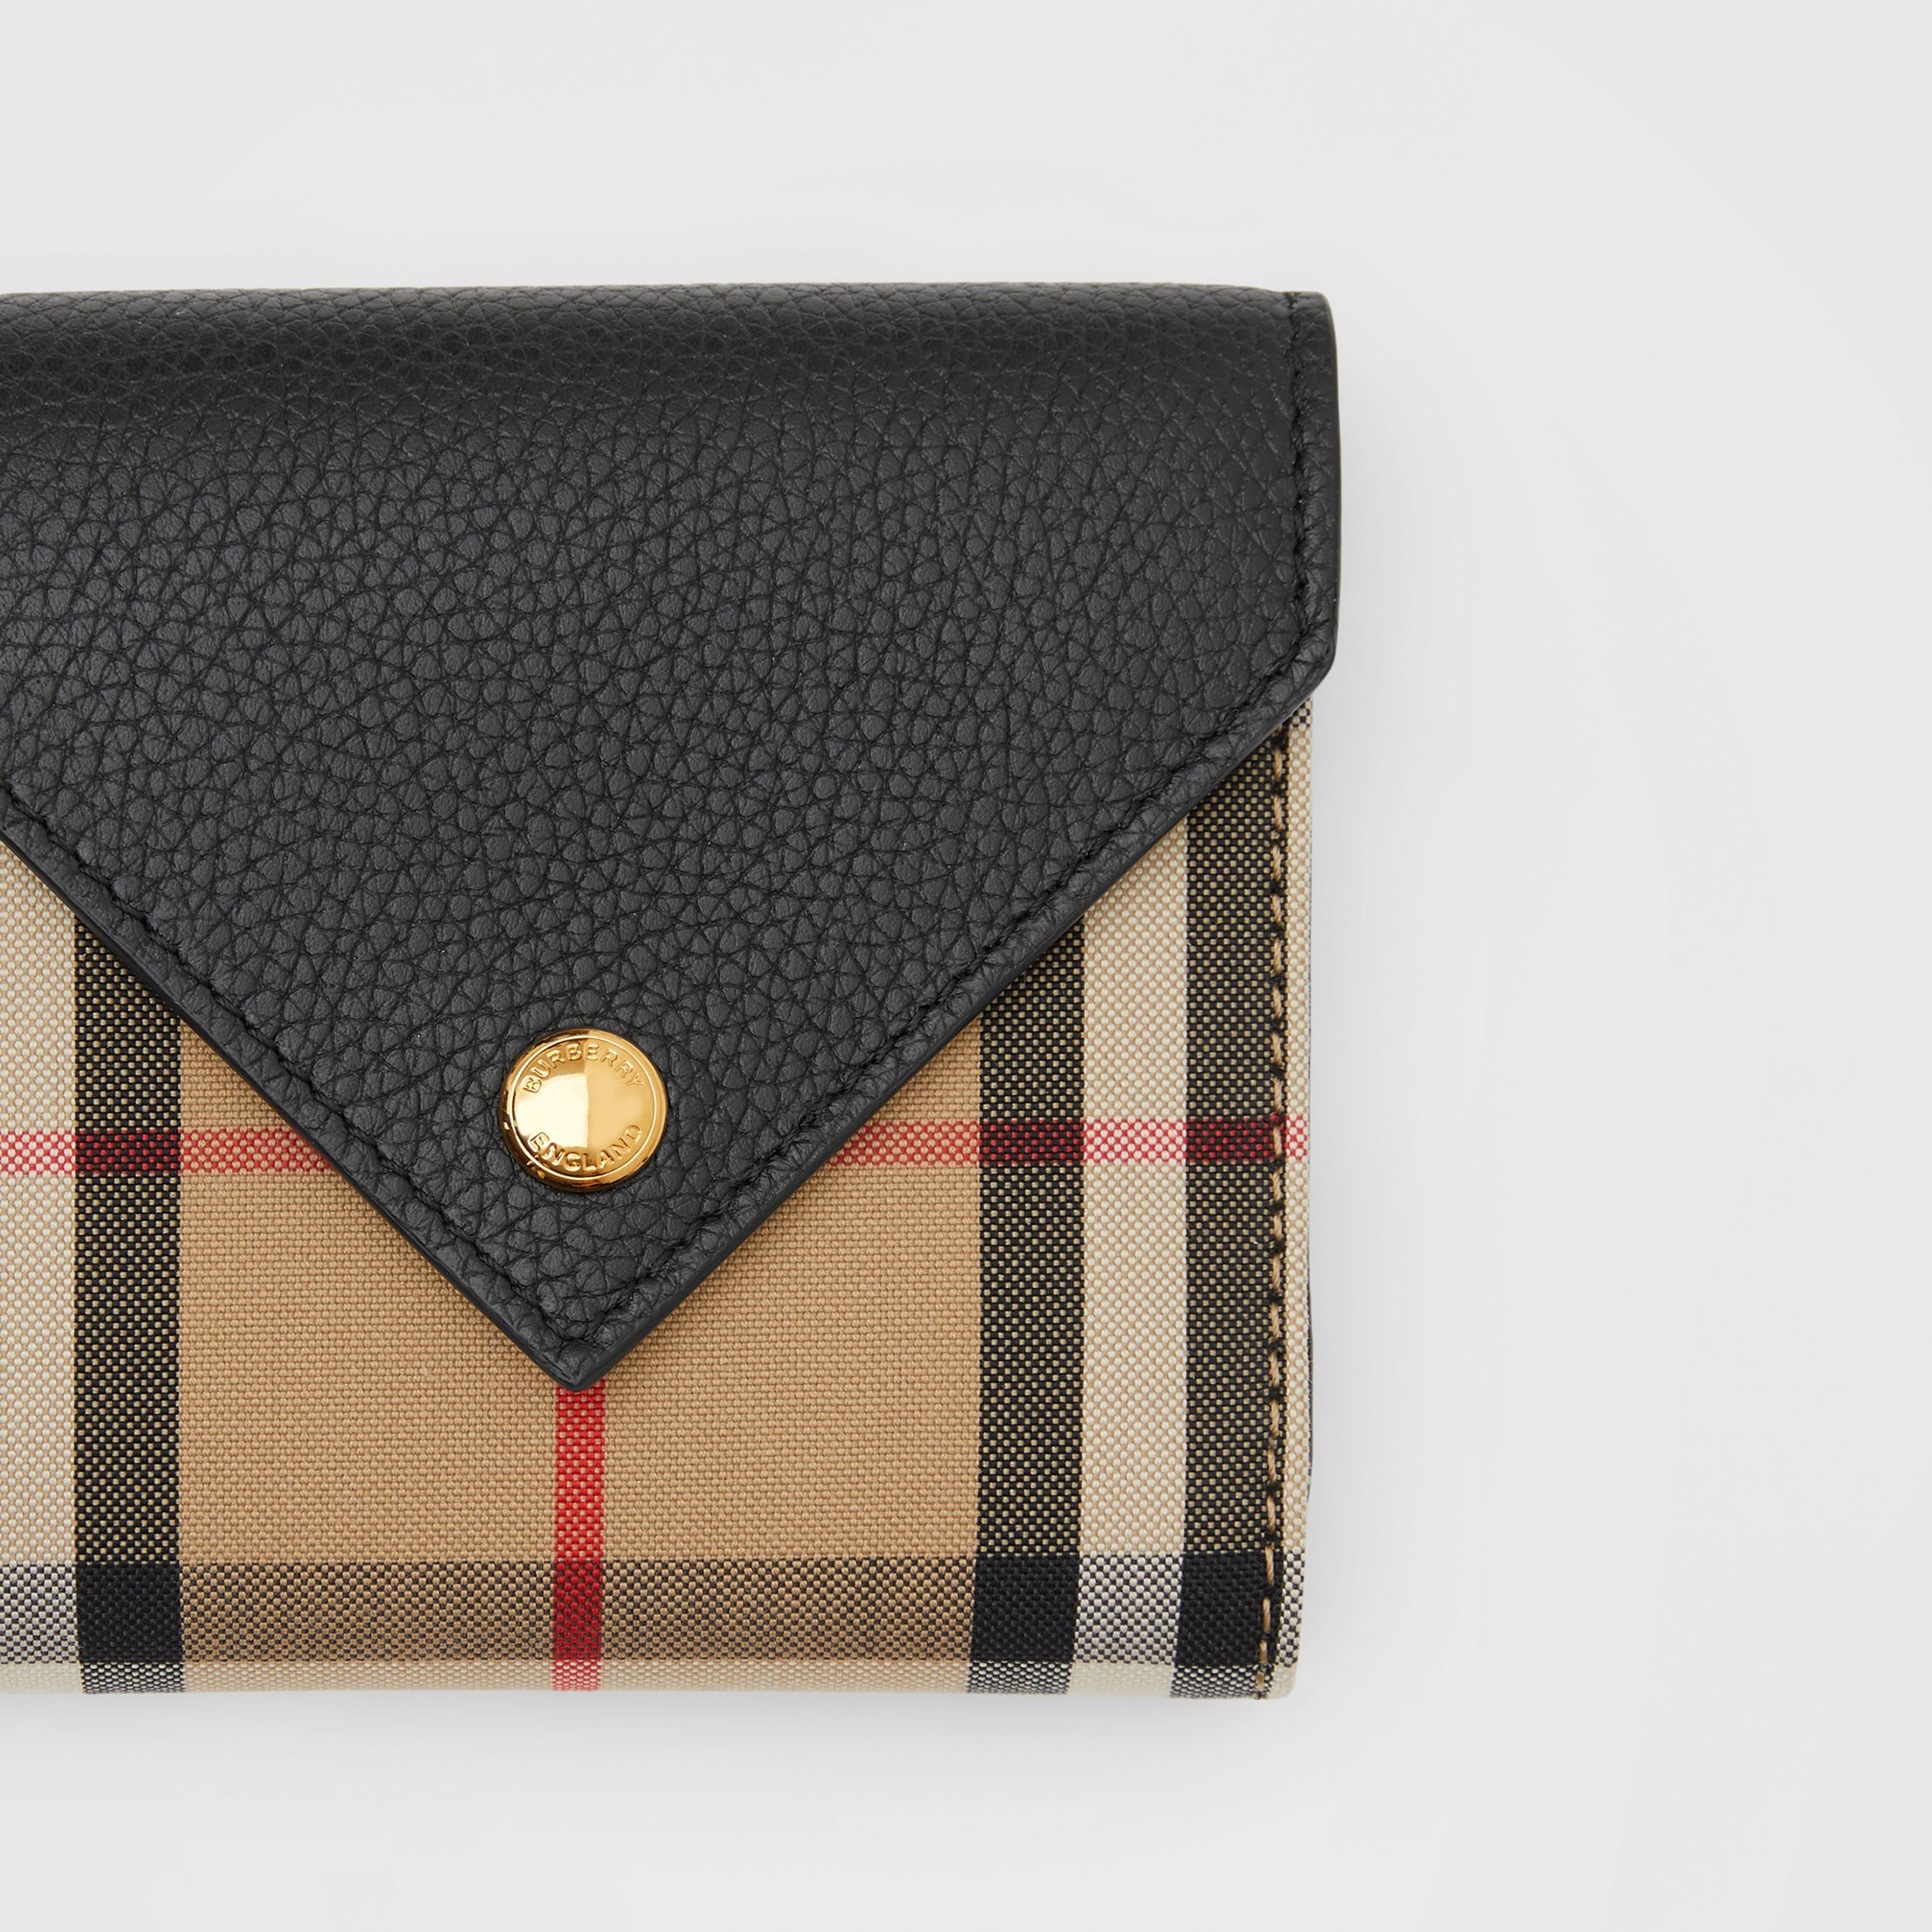 Vintage Check and Grainy Leather Folding Wallet in Black - Women | Burberry - 2